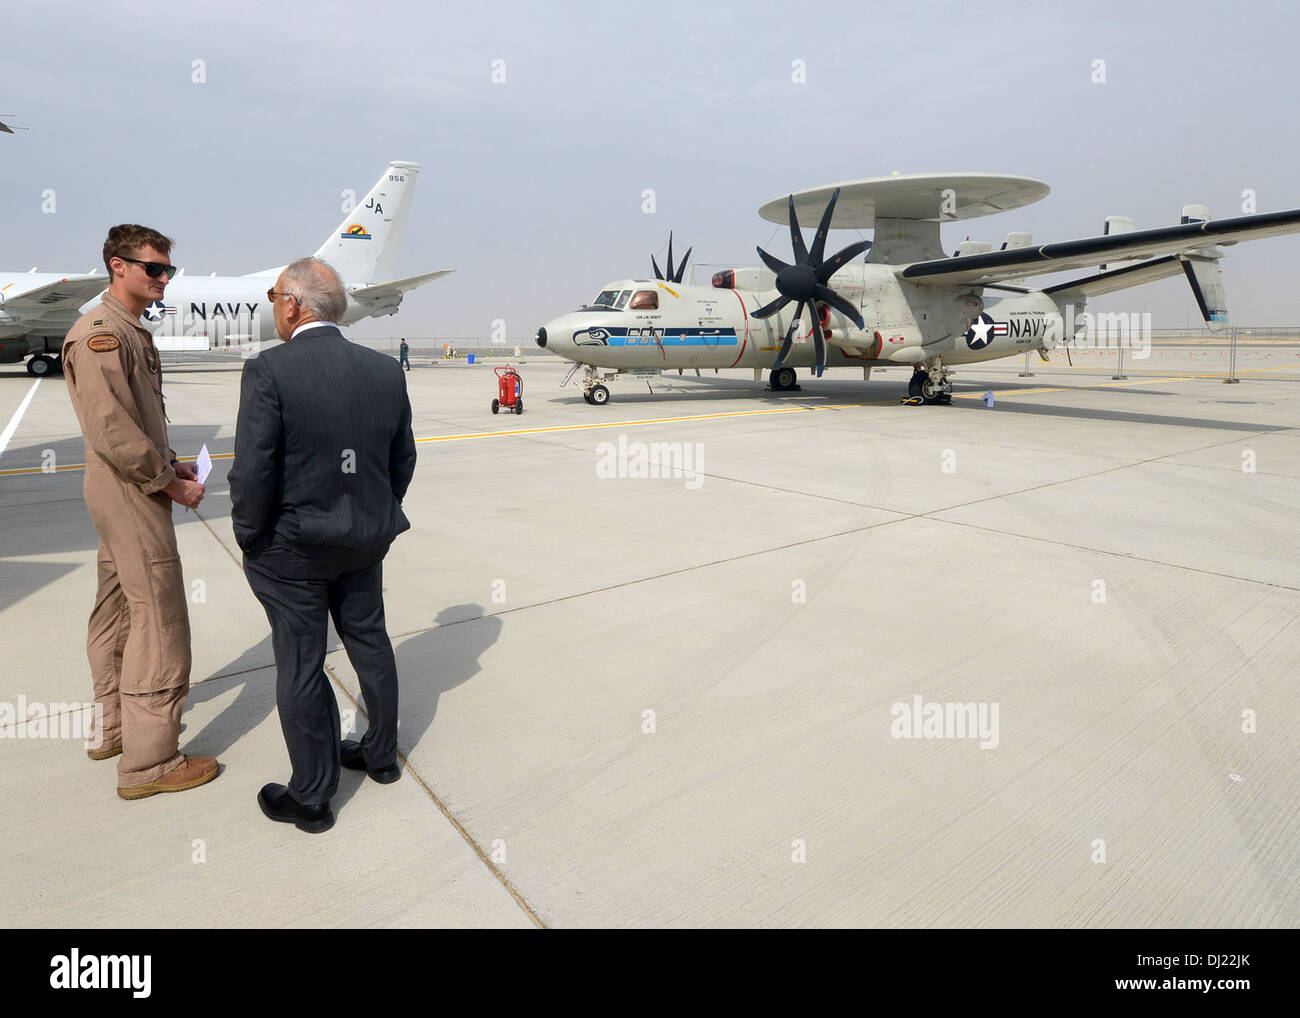 U.S. Navy Lt. Mike Lane talks to a spectator about the E-2 Hawkeye during the 2013 Dubai Airshow at the Dubai World Central airport in Jebel Ali, United Arab Emirates, Nov. 17, 2013. The U.S. participates in the DAS, one of the largest airshows in the wor - Stock Image